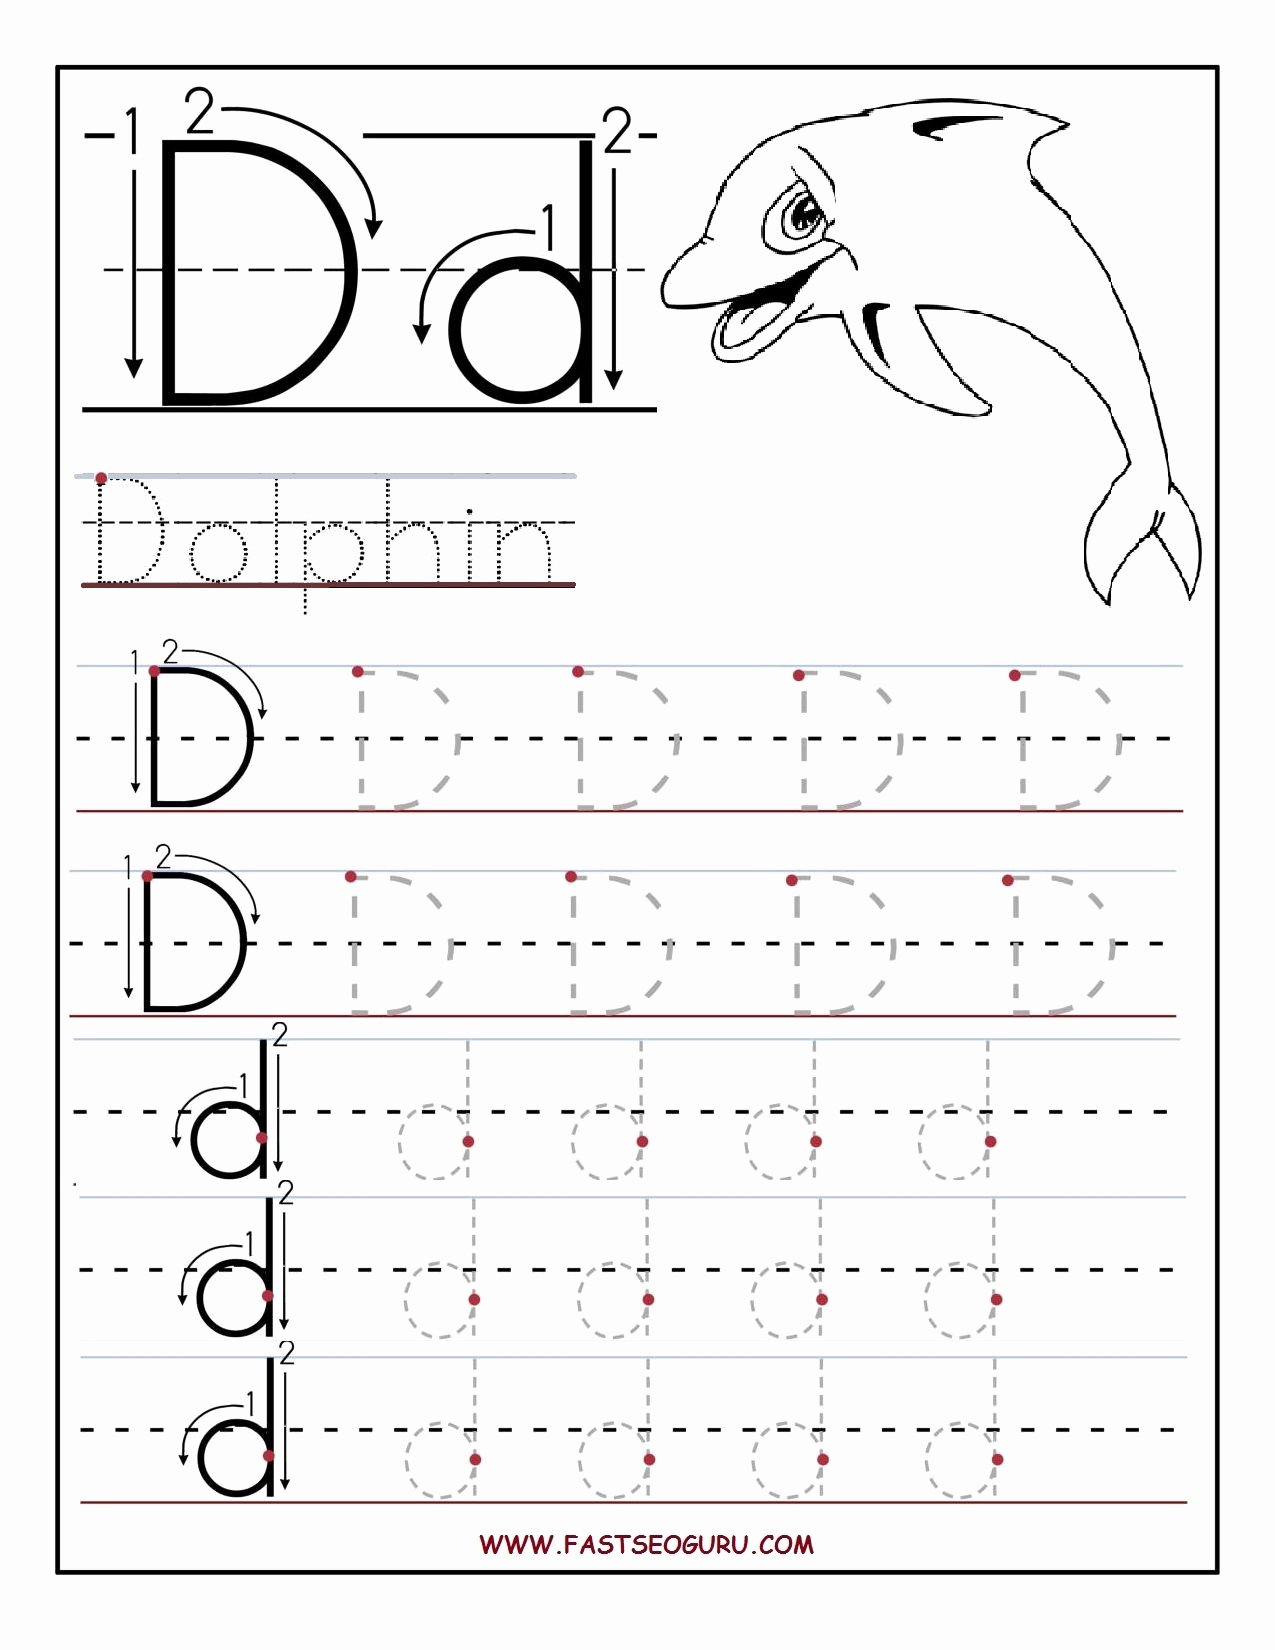 Letter D Tracing Worksheets for Preschoolers Printable Preschool Alphabet Worksheets Printables Printable Letter A